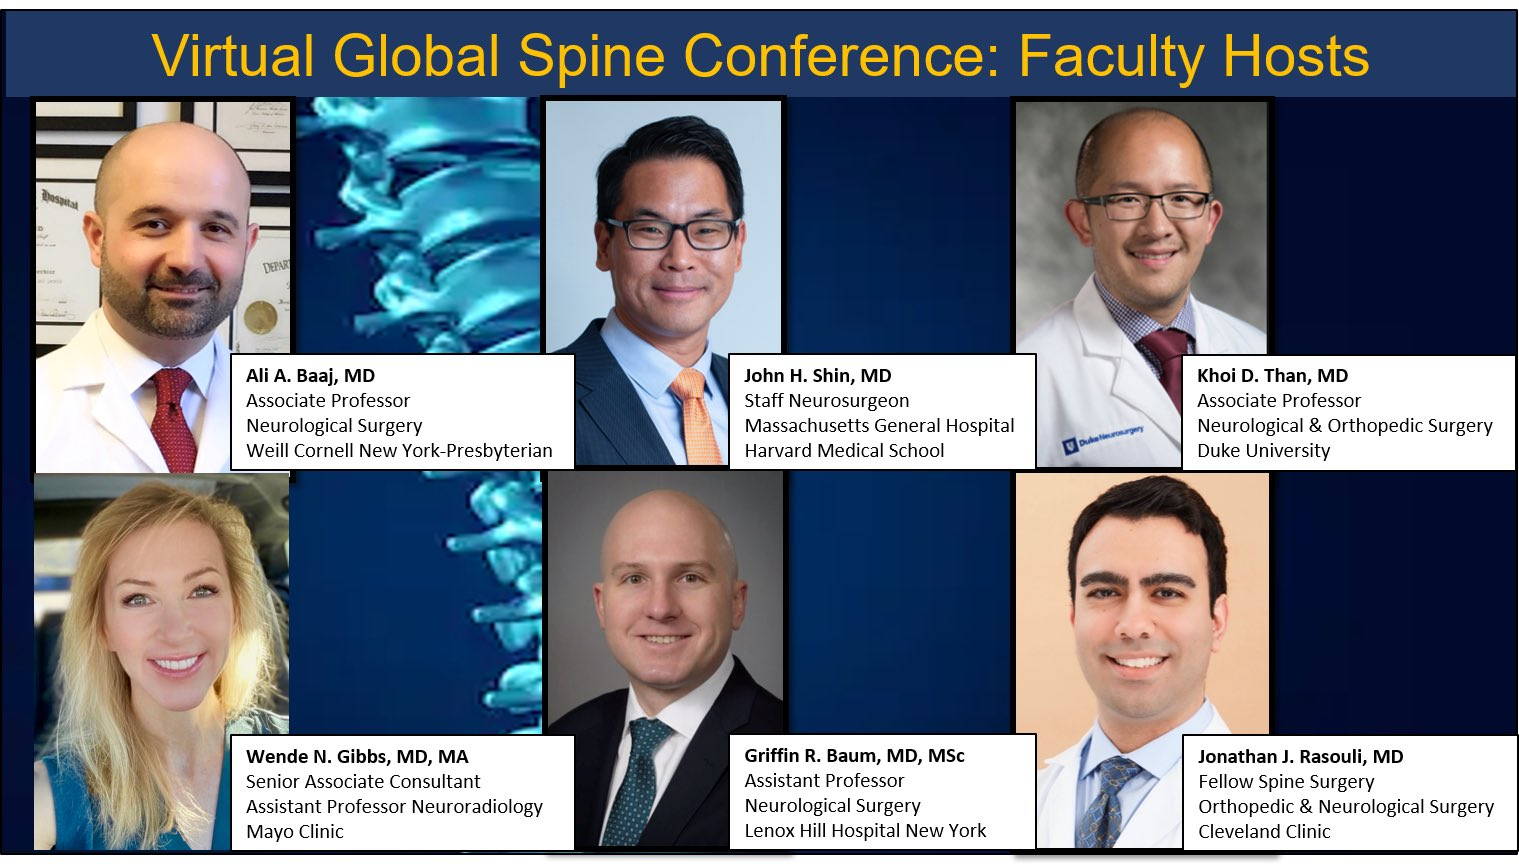 Education in spine care during COVID-19